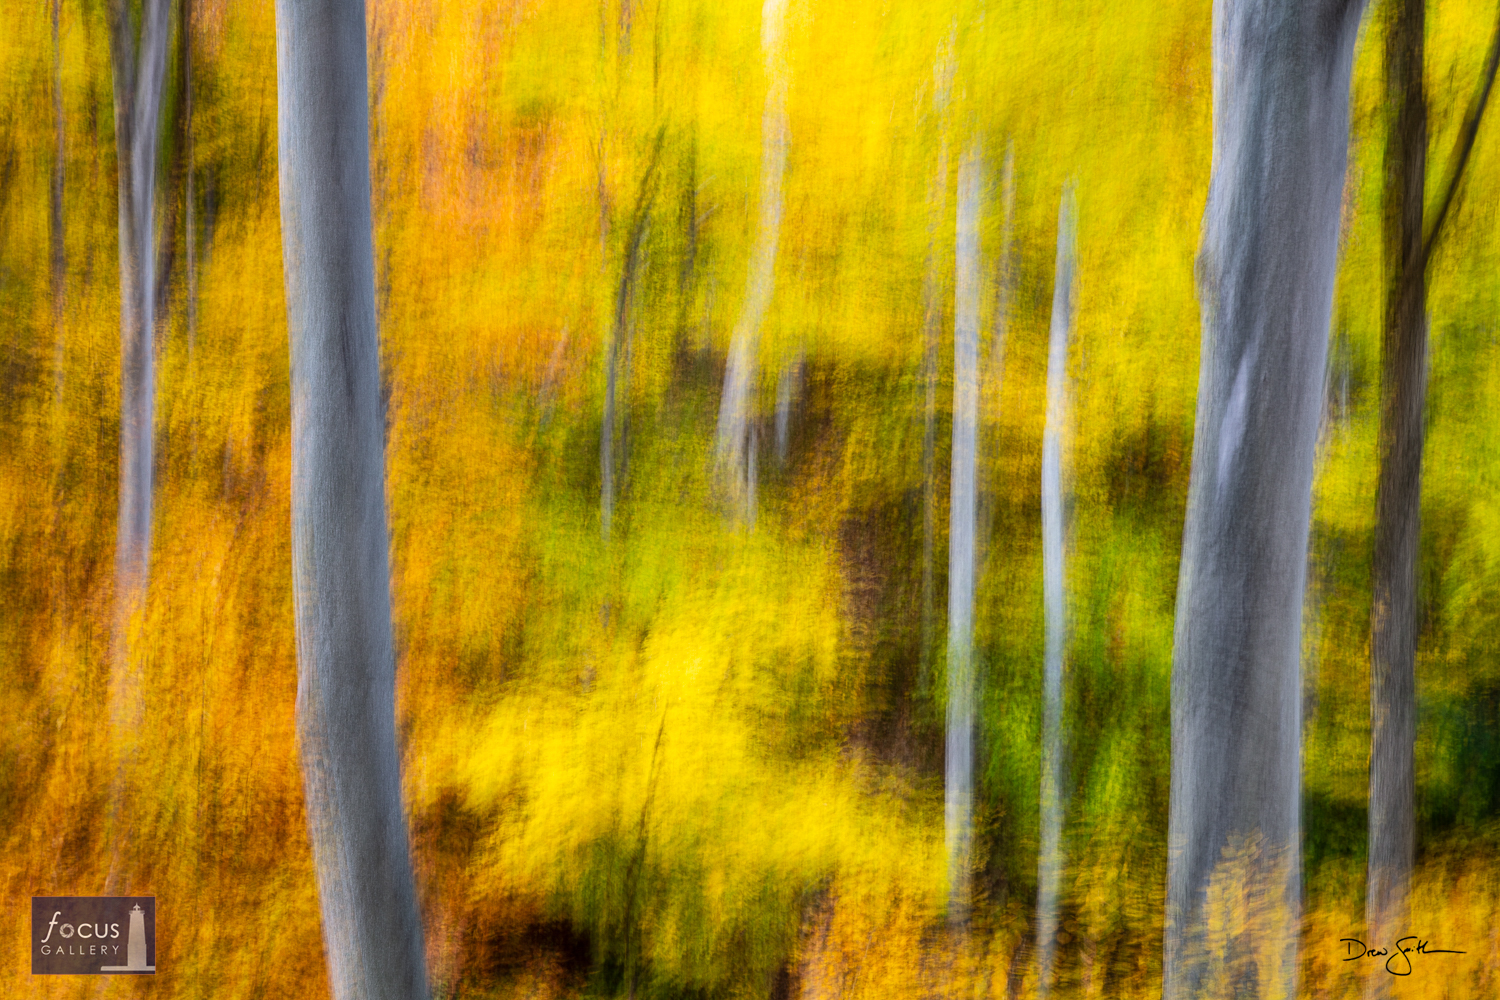 Photo © Drew Smith Impression of the north woods on an autumn day at the Whaleback Natural Area.  This image was made by using...